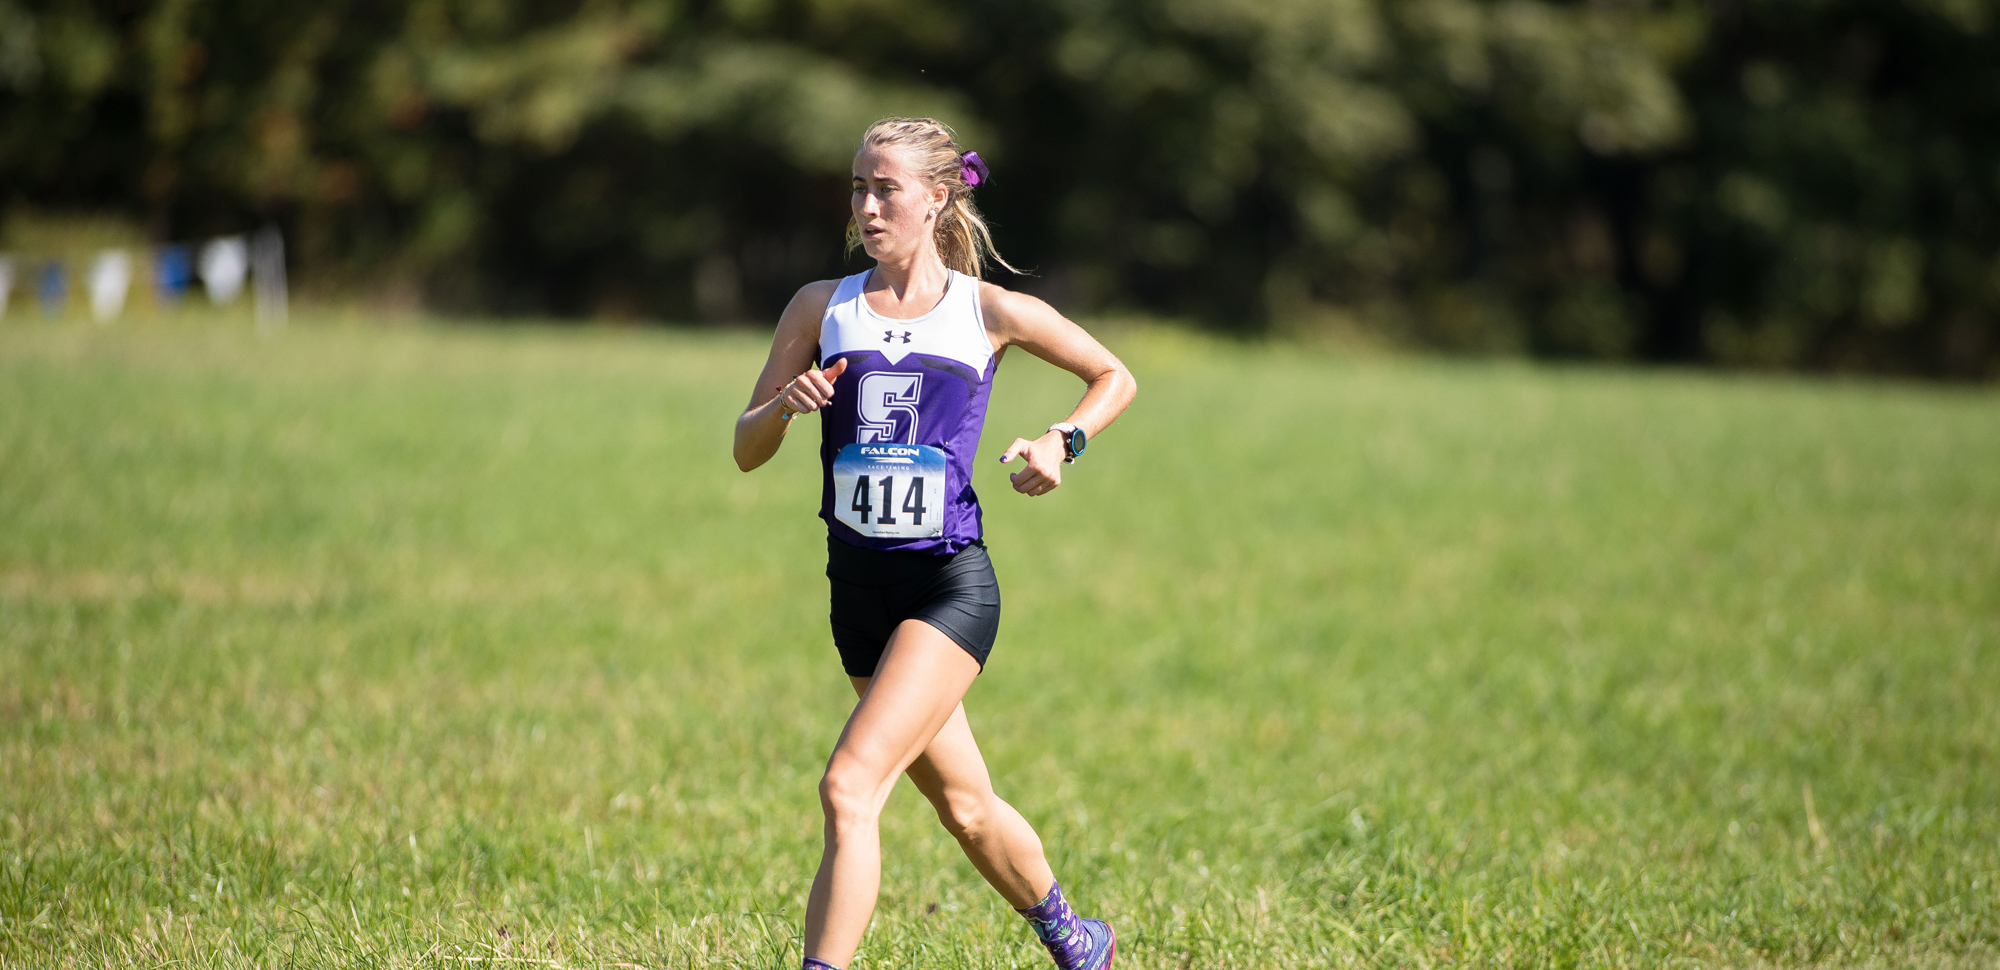 Freshman Abigail Corrigan won the Landmark Conference championship on Saturday in Huntingdon, Pa.